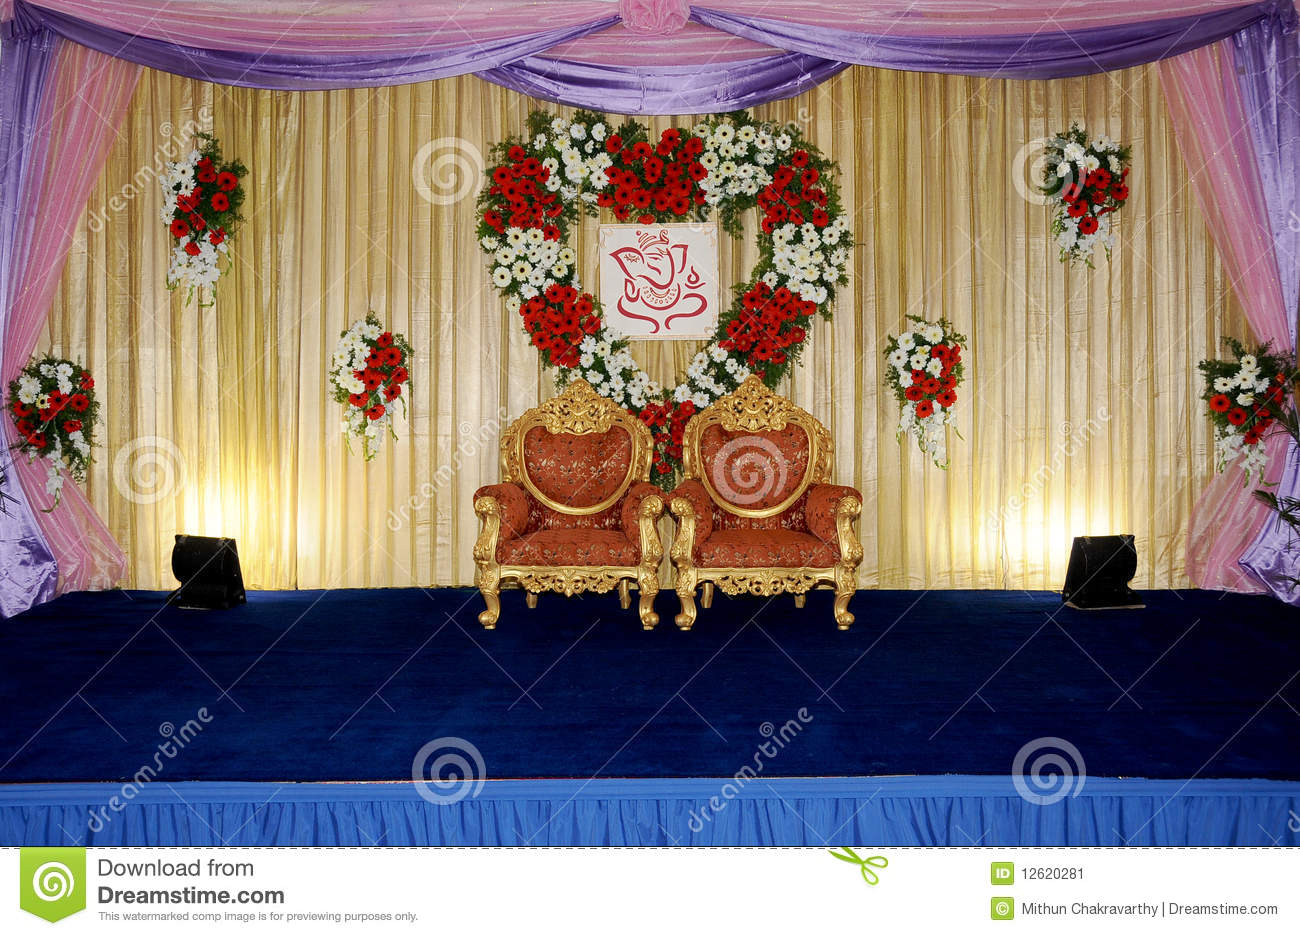 5 542 Wedding Stage Photos Free Royalty Free Stock Photos From Dreamstime